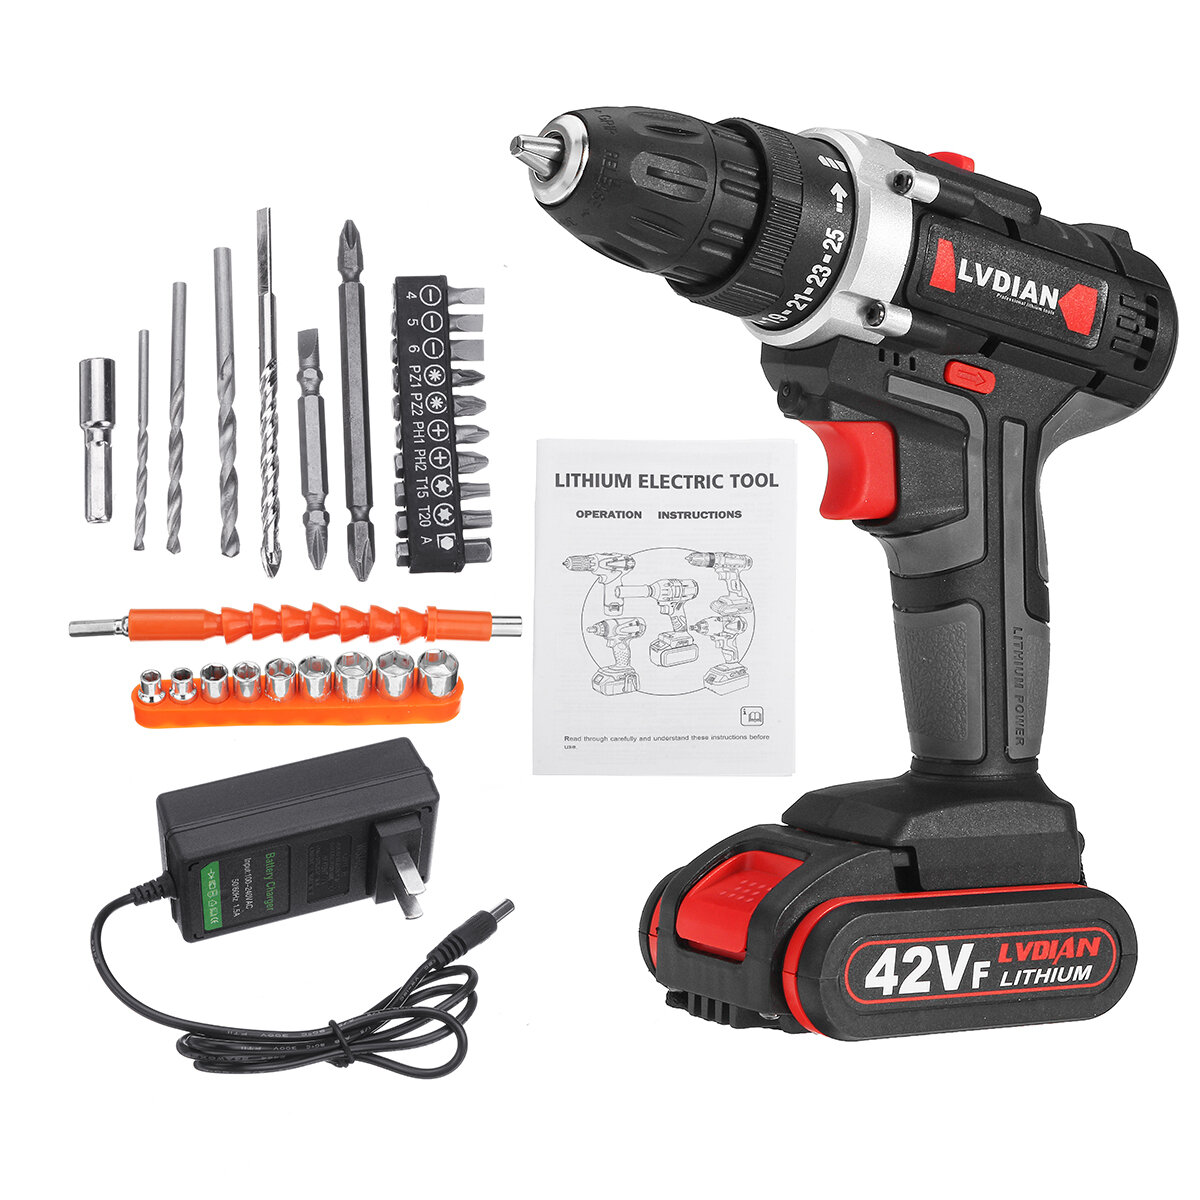 42VF Li-Ion Battery Cordless Rechargeable Electric Impact Drill Driver Screwdriver LED Light - 2